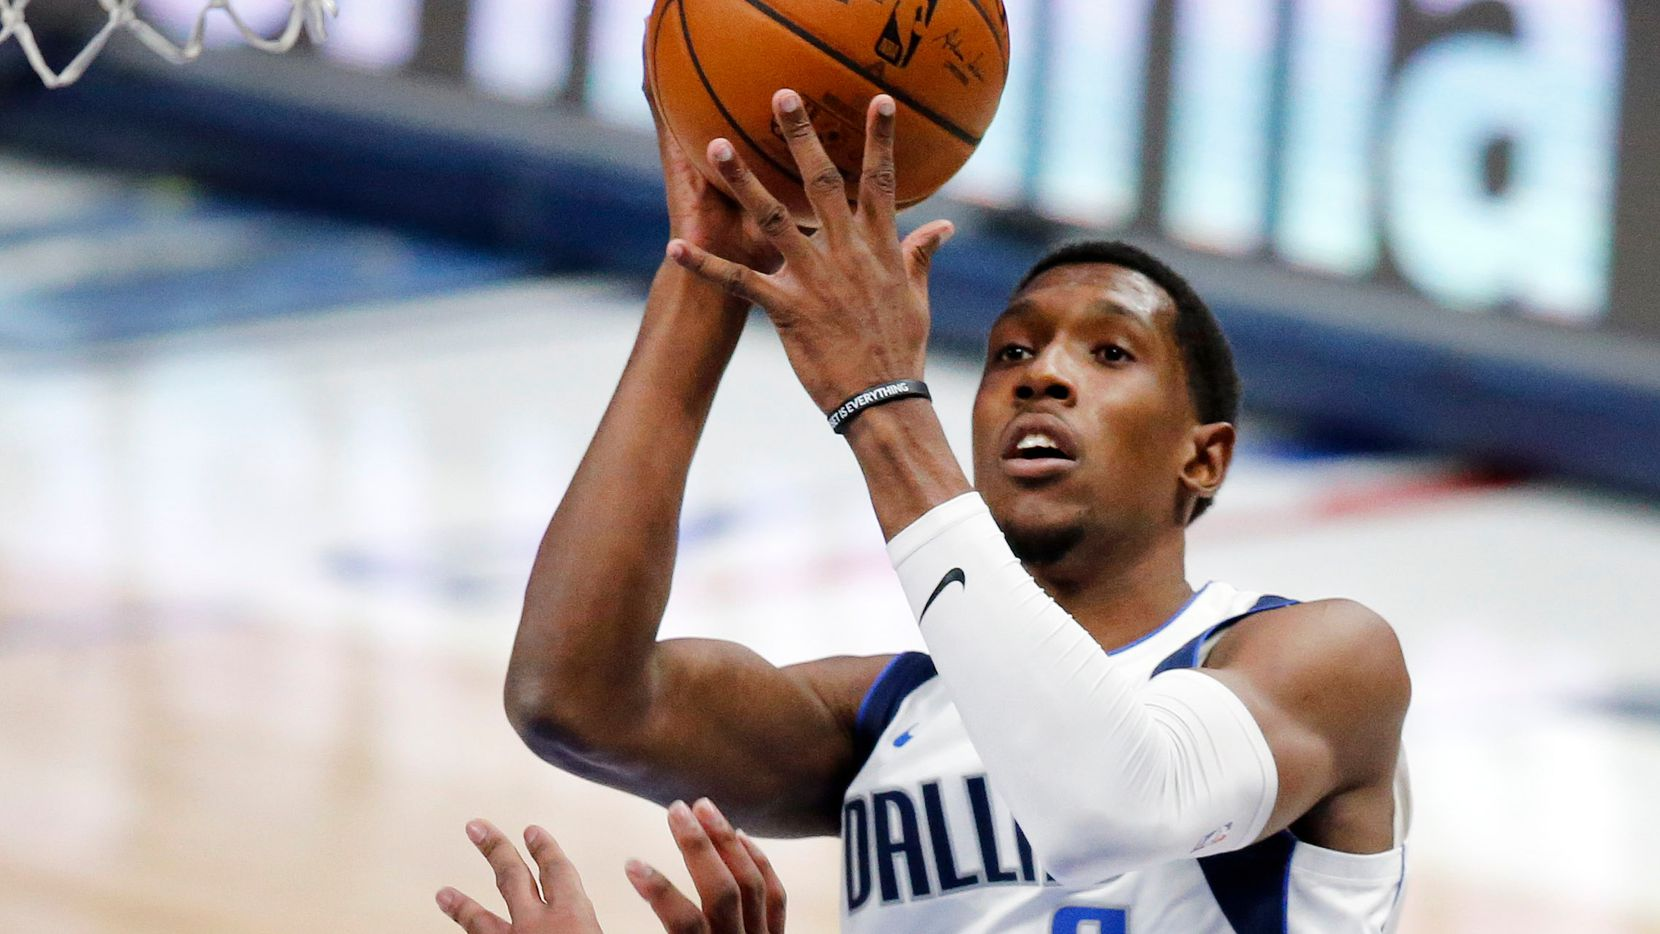 Dallas Mavericks guard Josh Richardson (0) puts up a shot over Minnesota Timberwolves forward Josh Okogie (20) during the first quarter of their preseason game at the American Airlines Center in Dallas, Thursday, December 17, 2020.